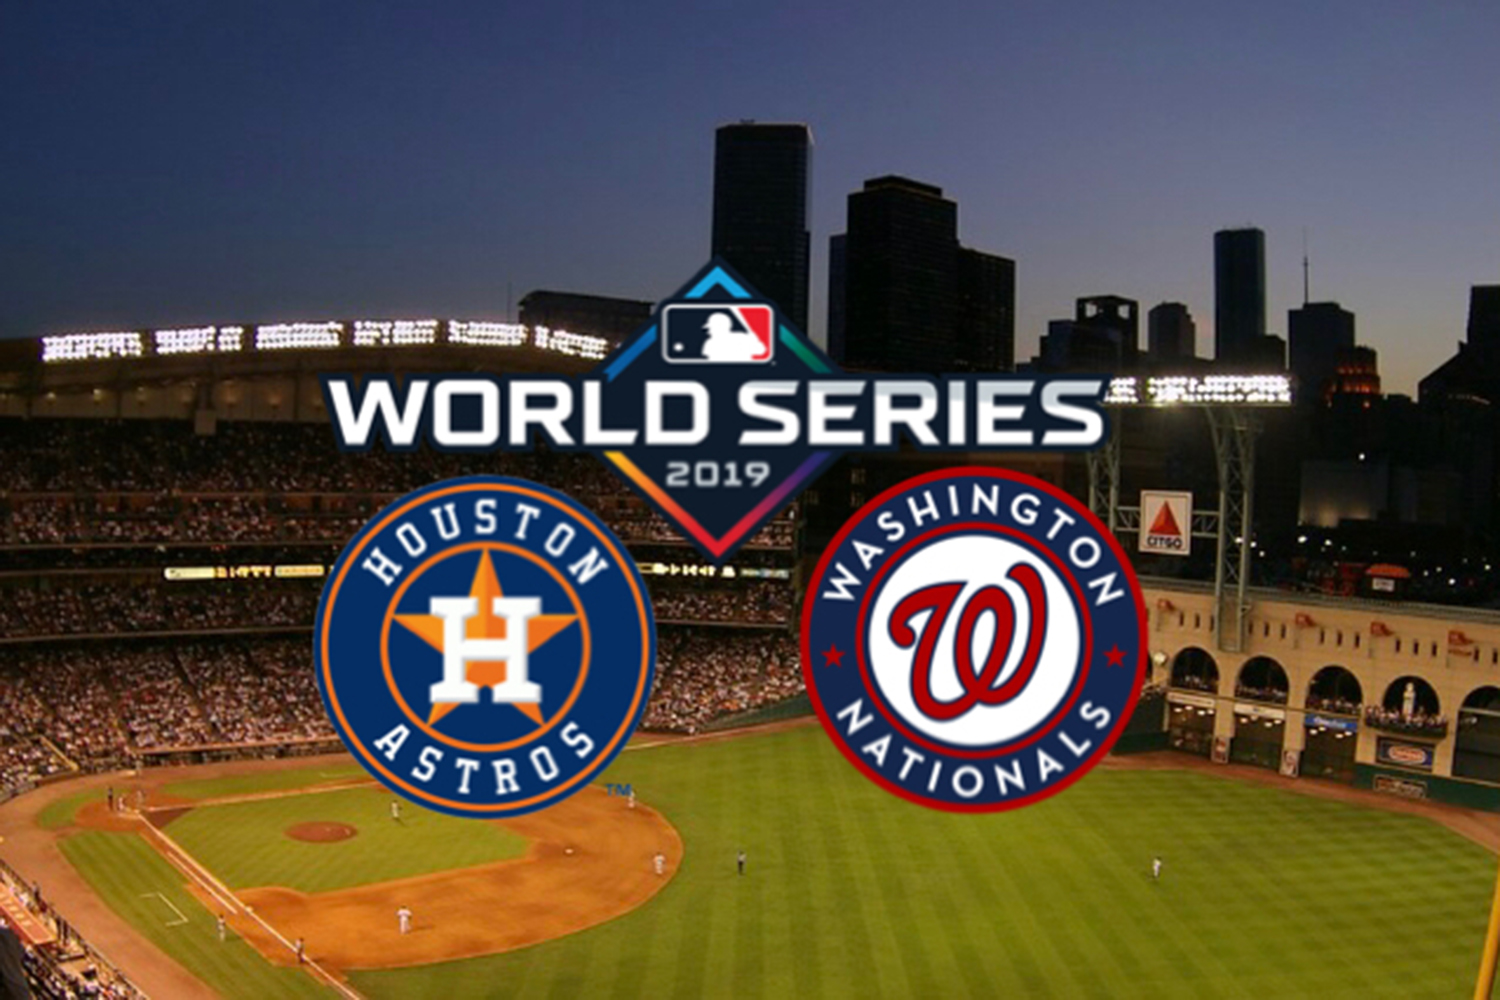 The World Series began on Tuesday Oct. 22, 2019. Every game was won by the away team.